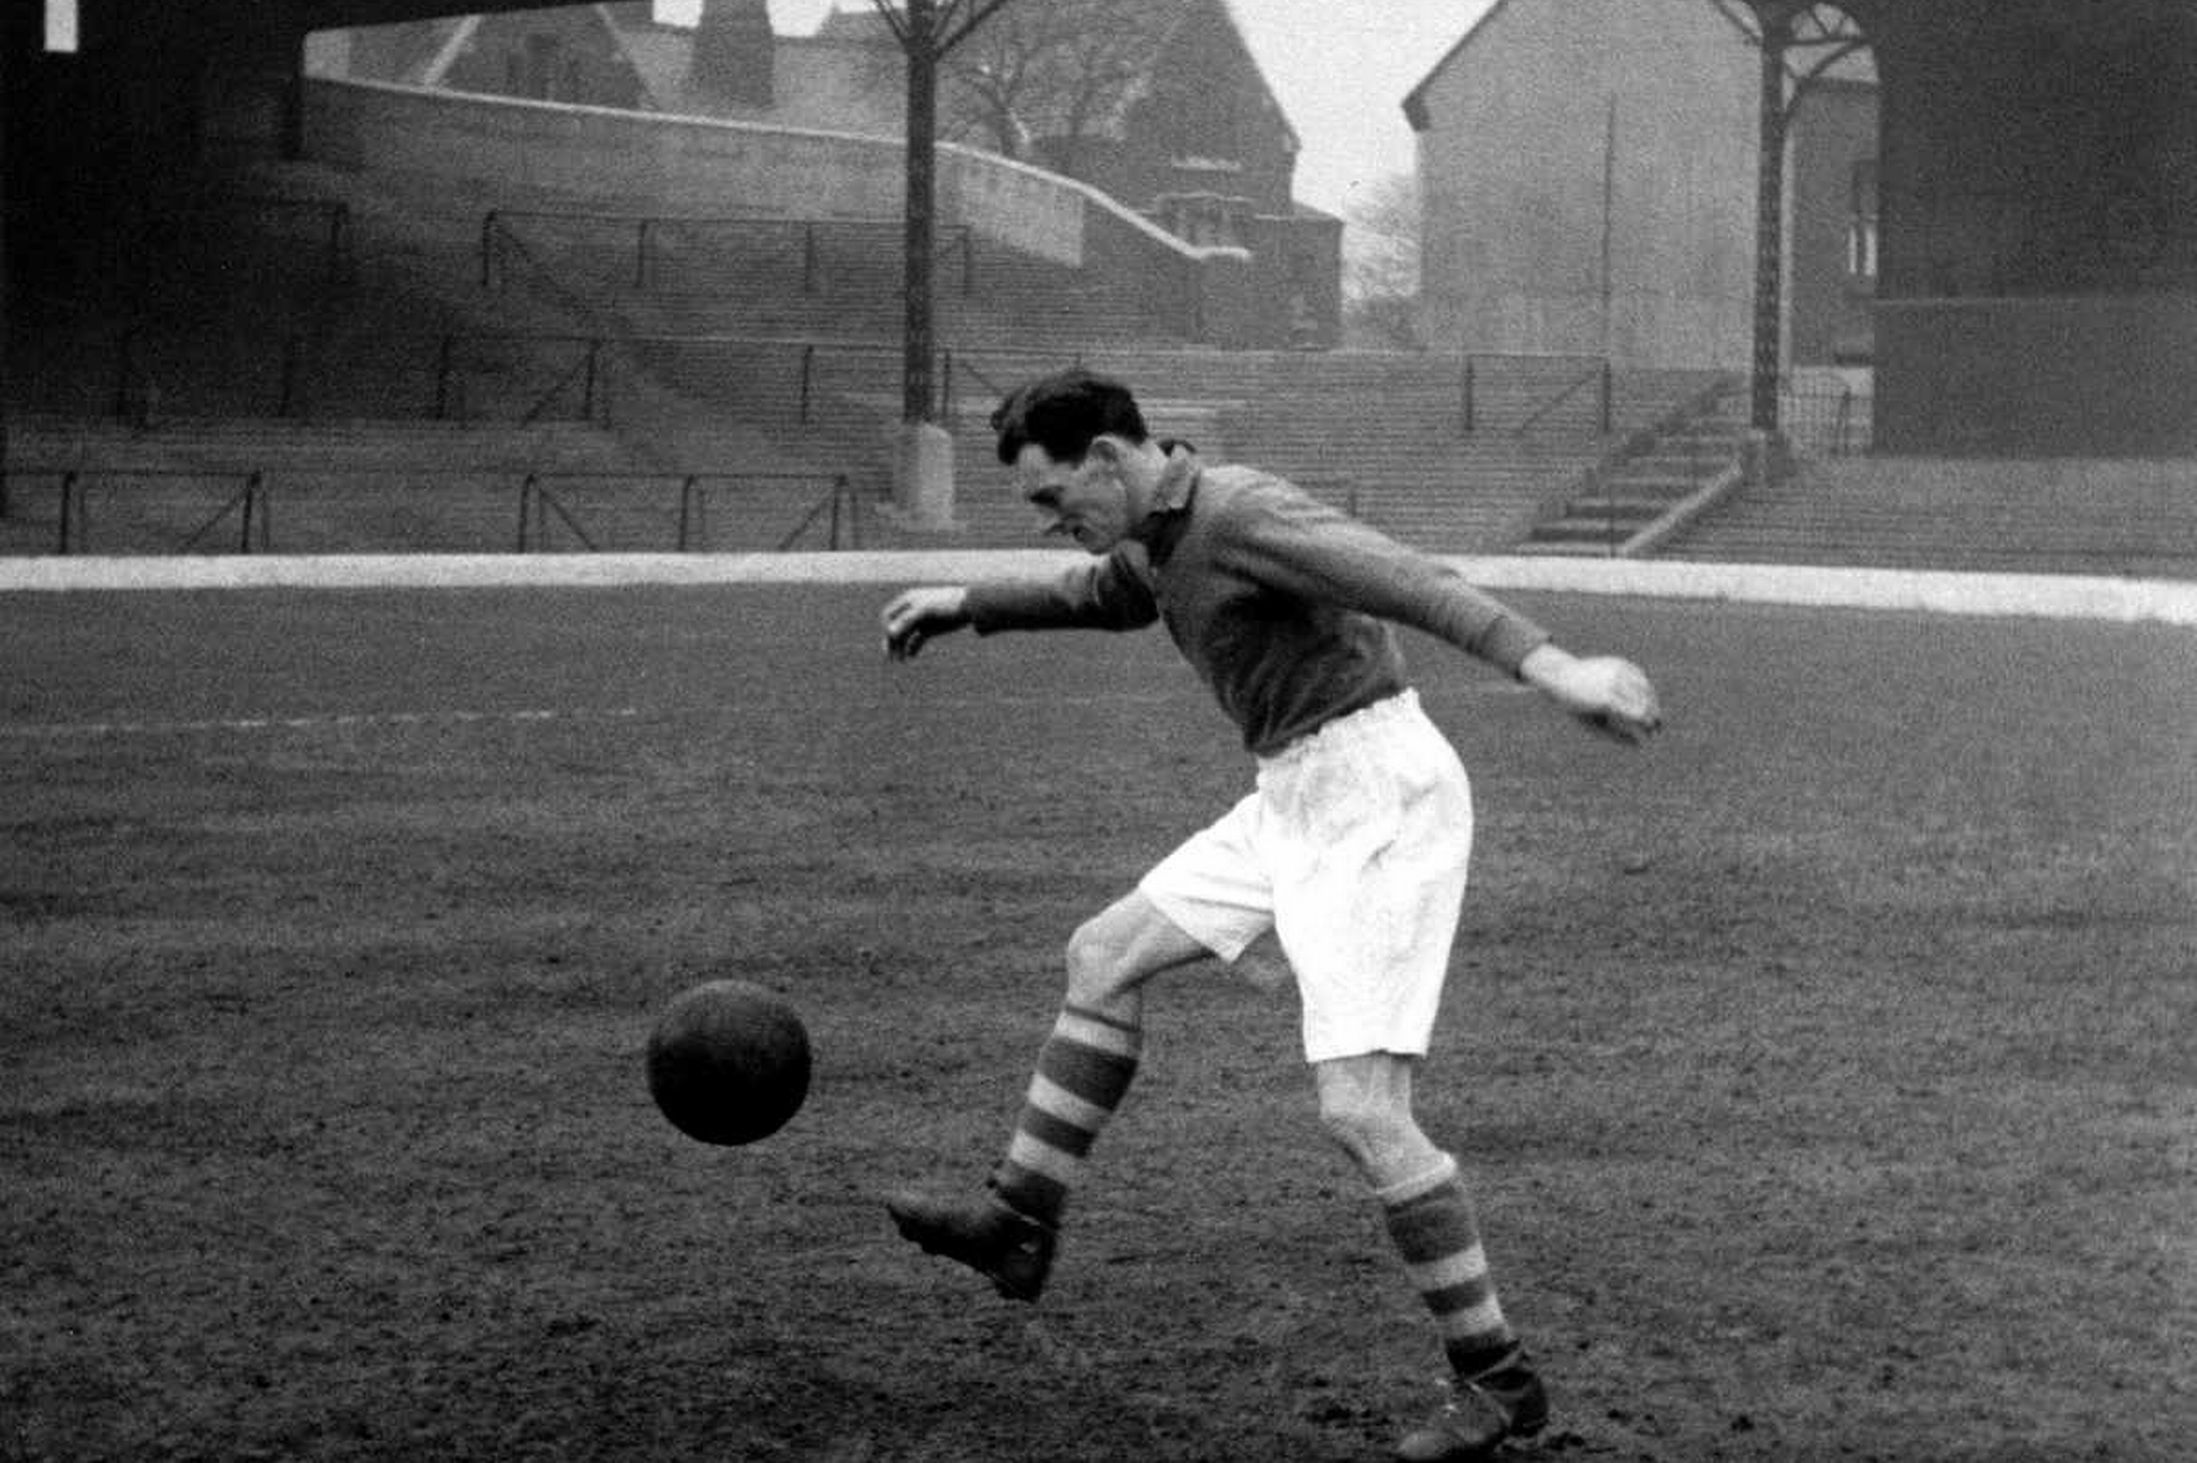 Liverpool footballer Phil Taylor practices his ball control skills during a training session at Anfield. 17th February 1950.